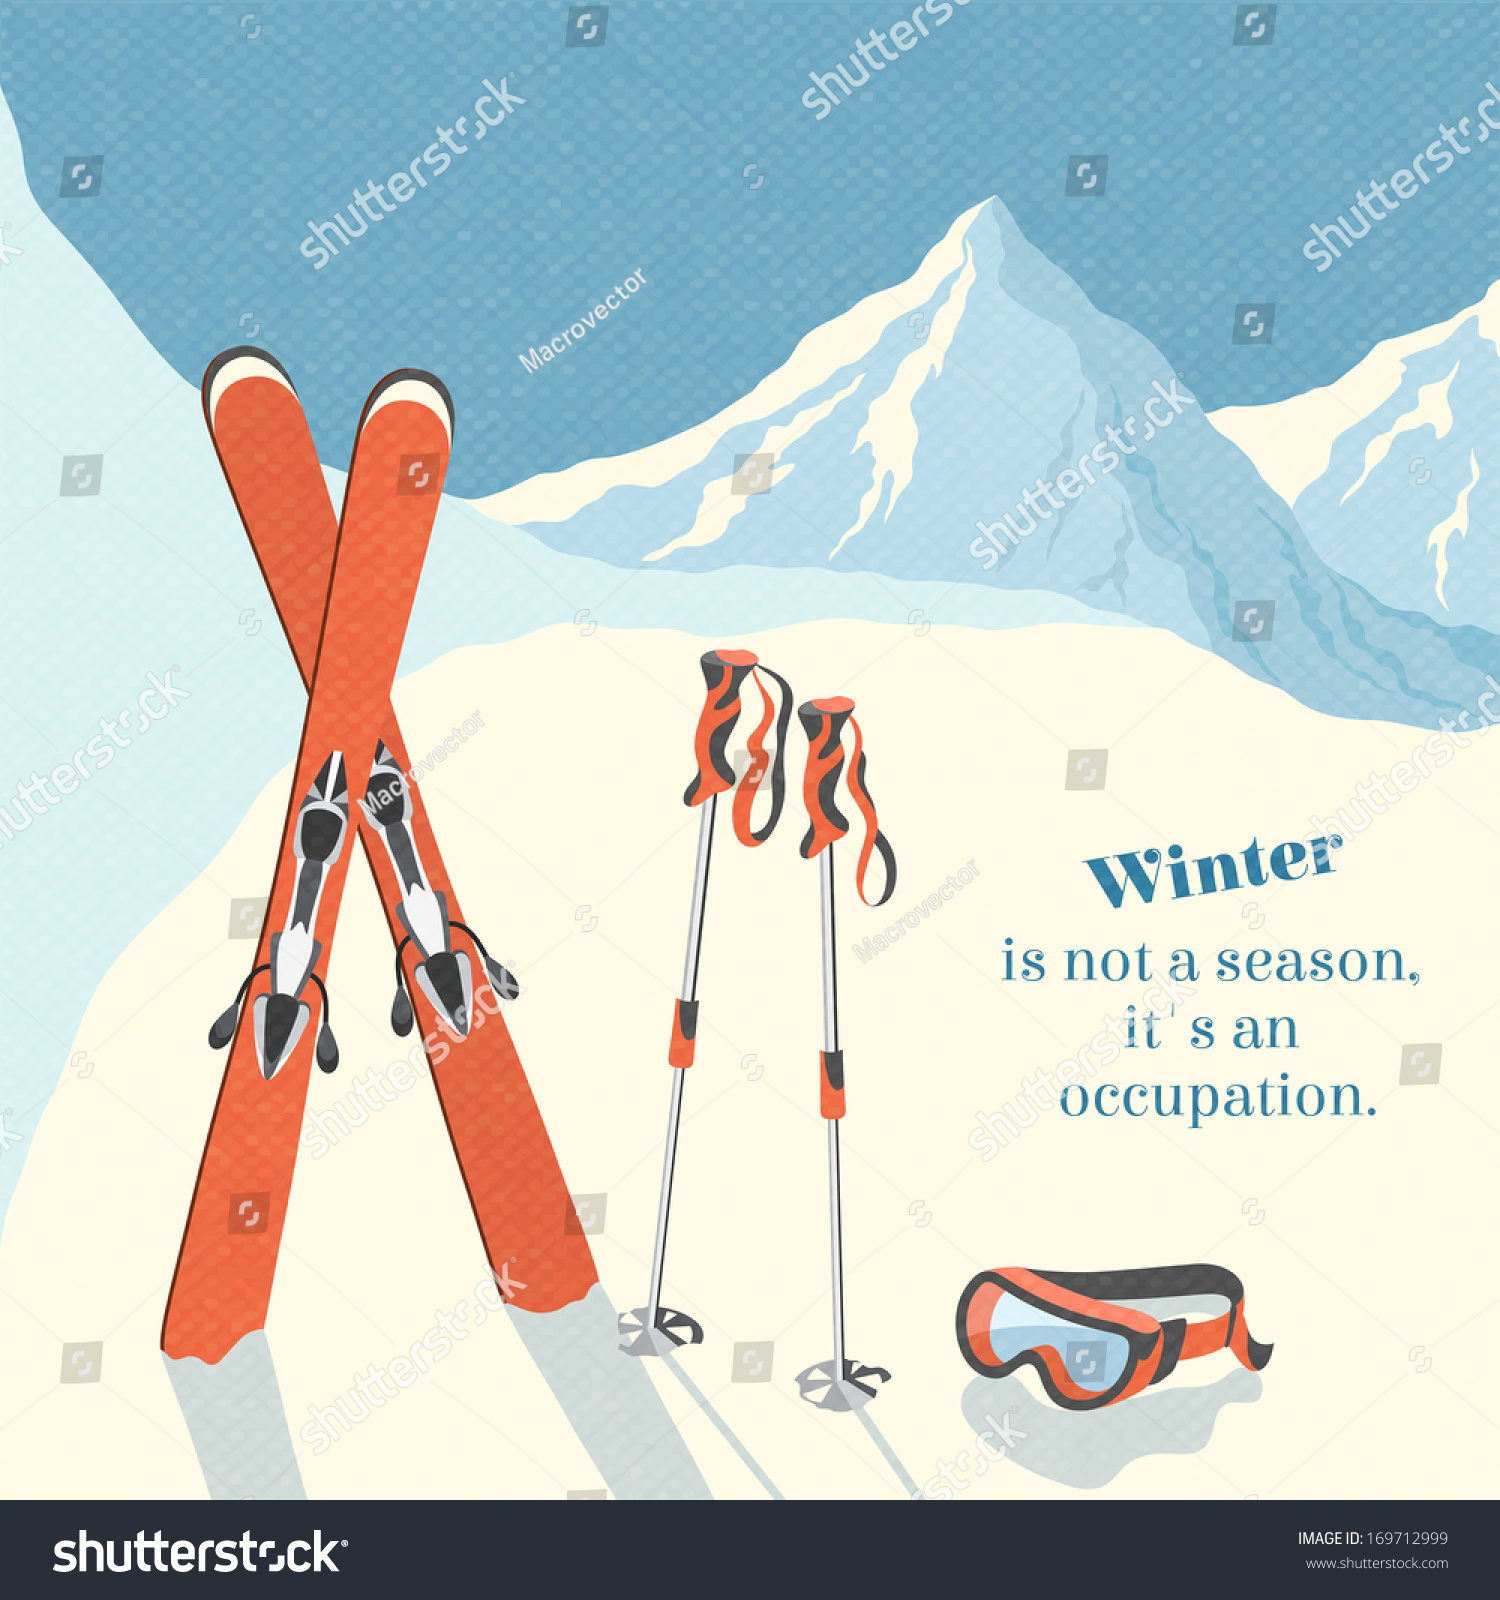 Ski Winter Mountain Landscape Background Retro Poster Vector Illustration 169712999 Shutterstock